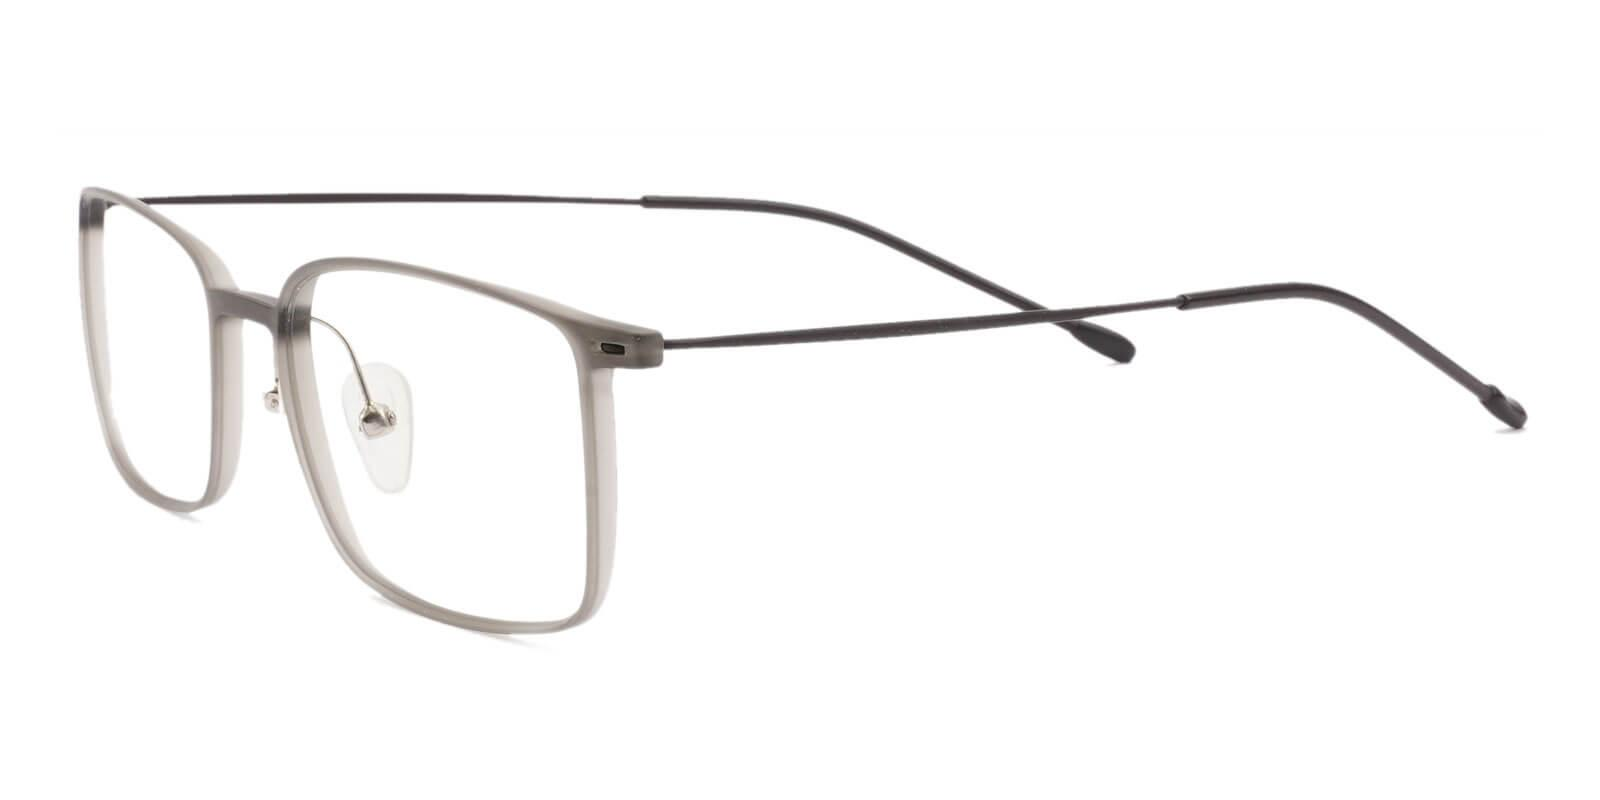 Philadelphia Gray Combination Lightweight , Eyeglasses , NosePads Frames from ABBE Glasses